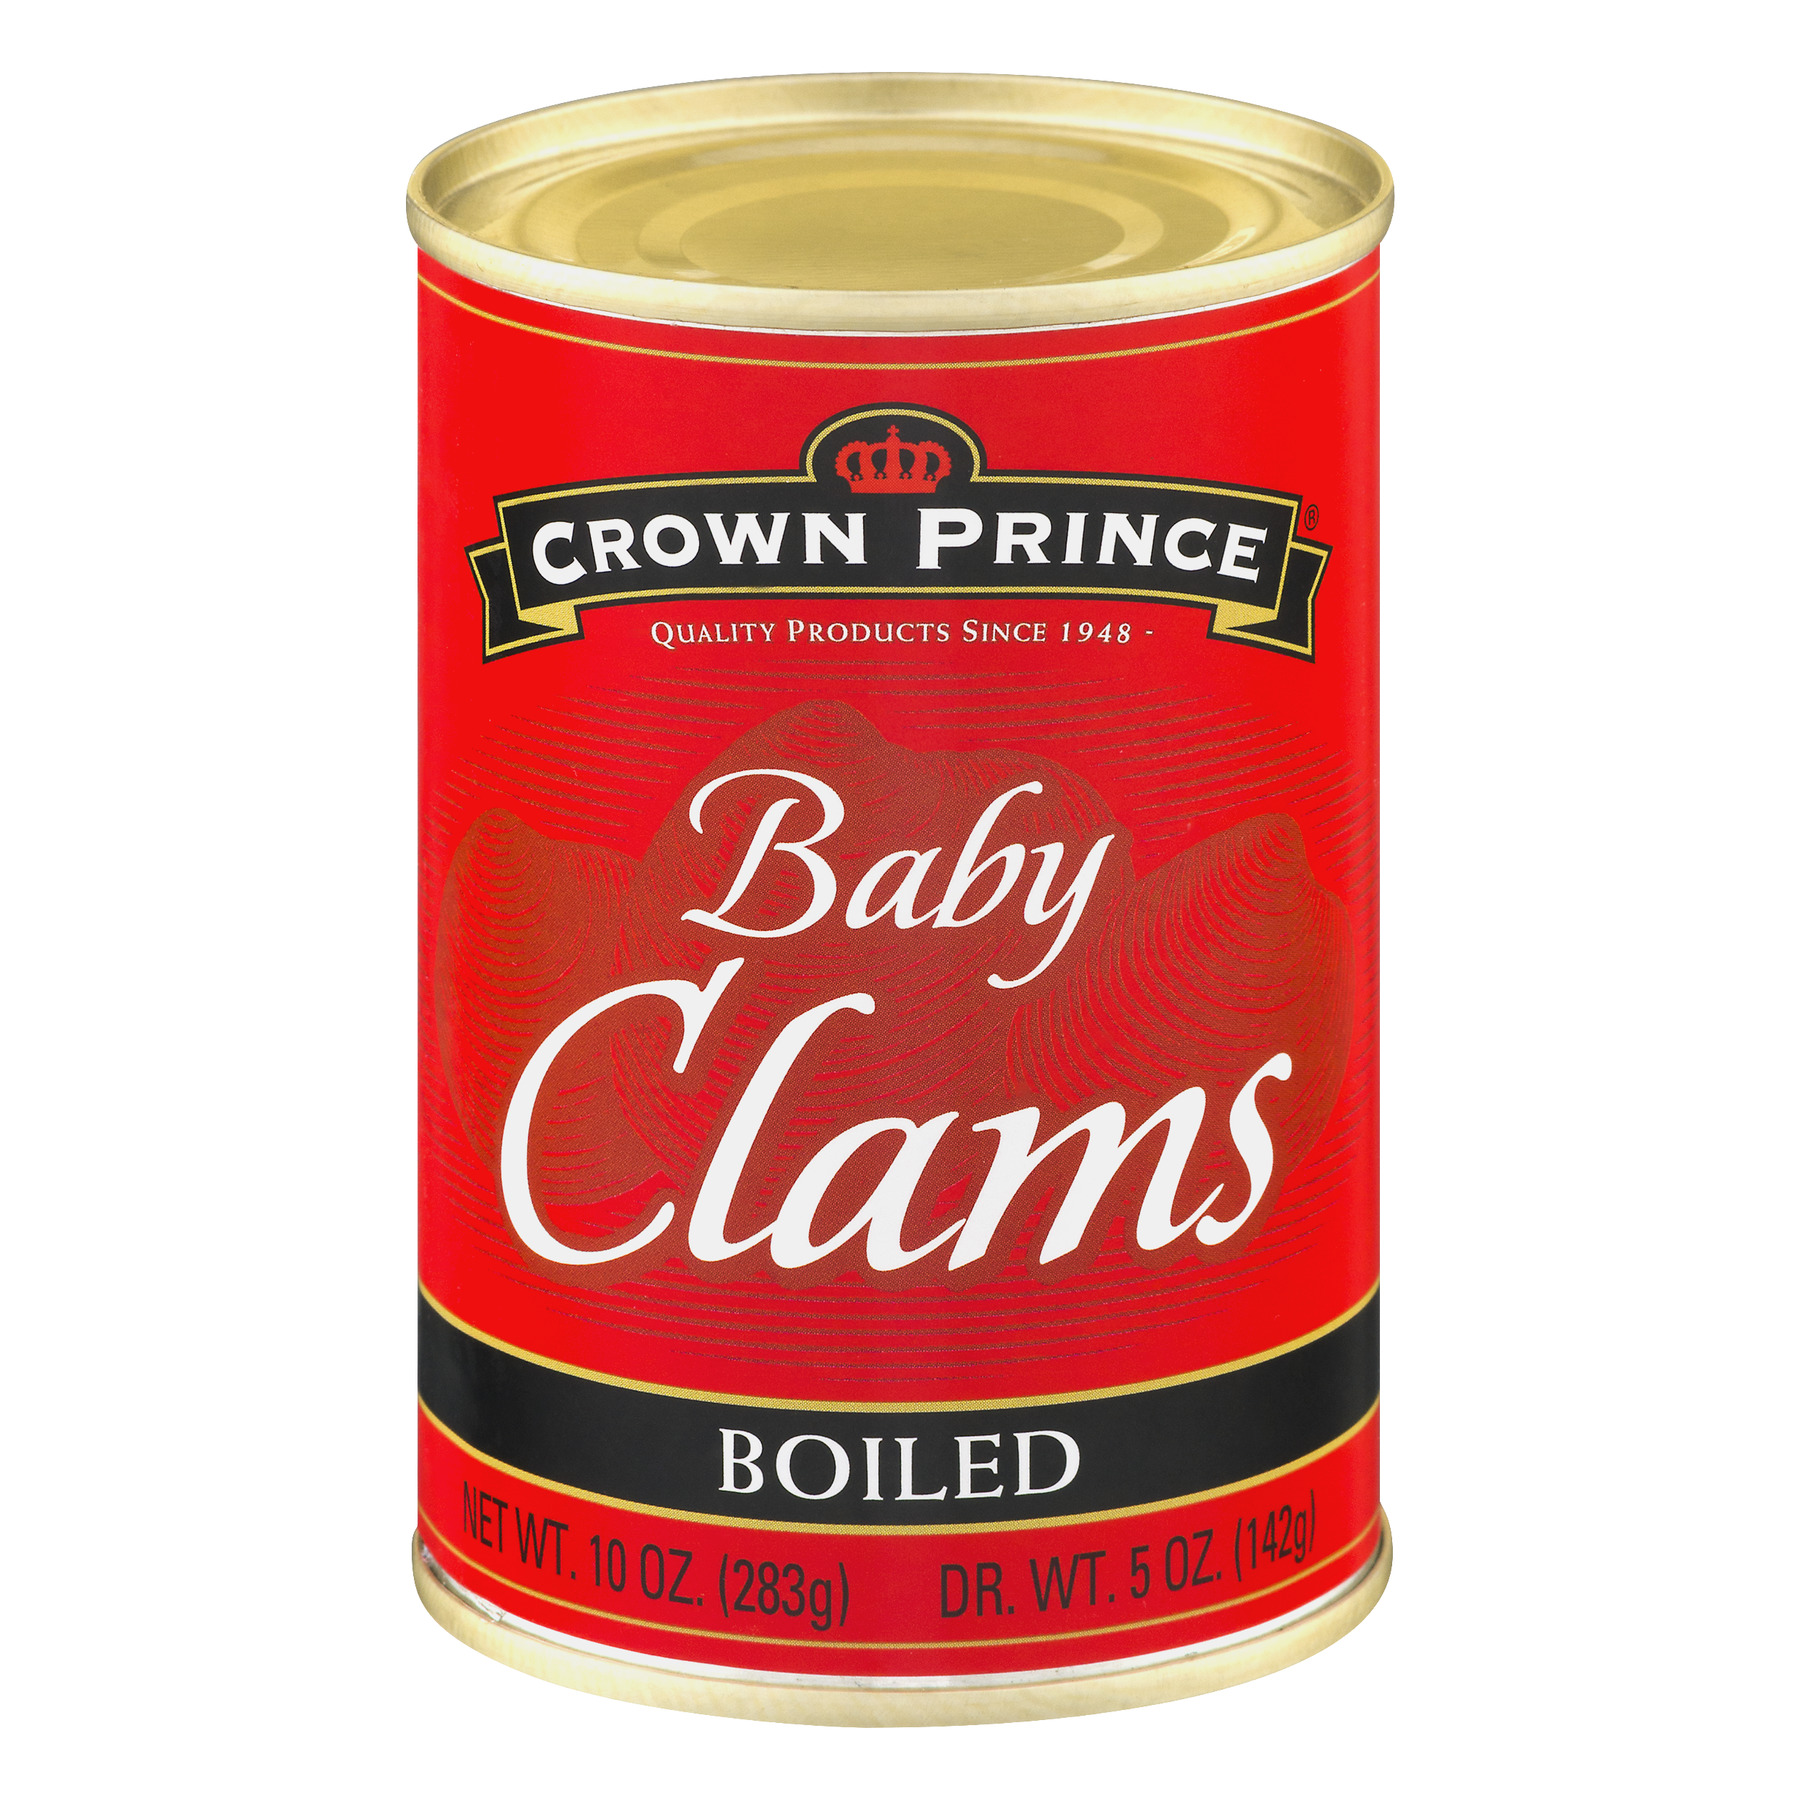 Crown Prince Boiled Baby Clams, 10 oz Can